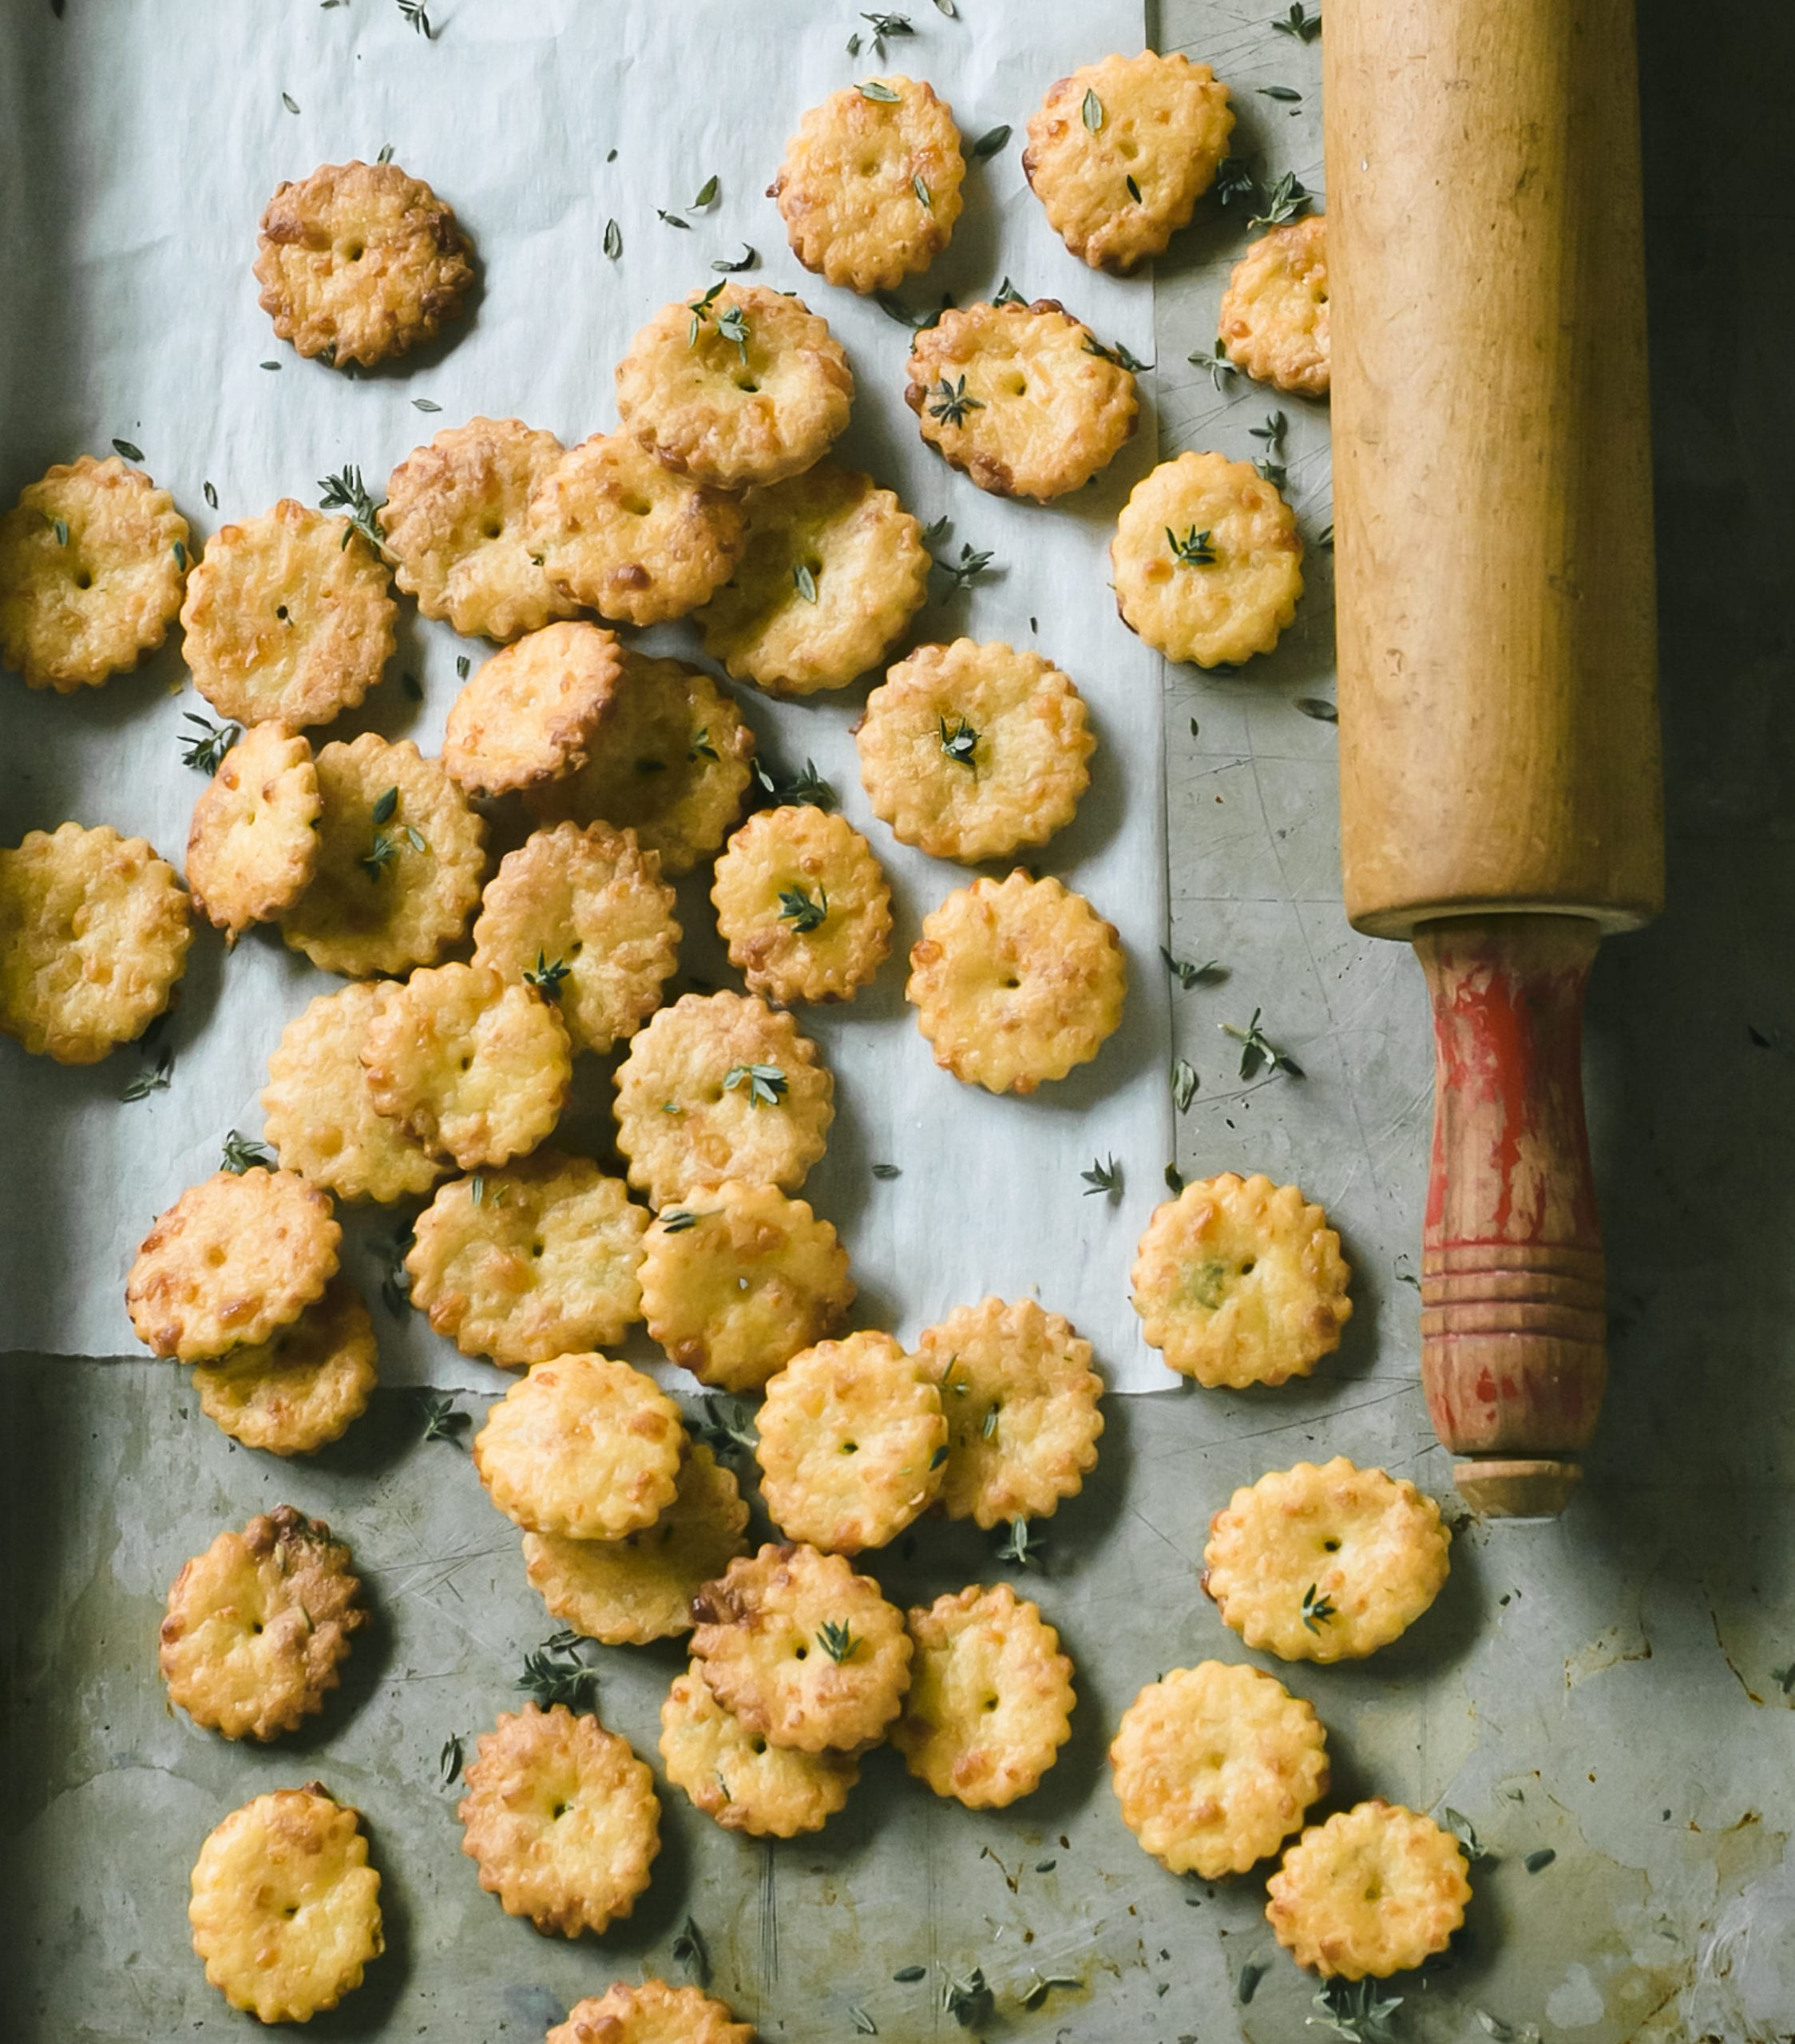 Tray of puffed sourdough crackers with gruyere and thyme